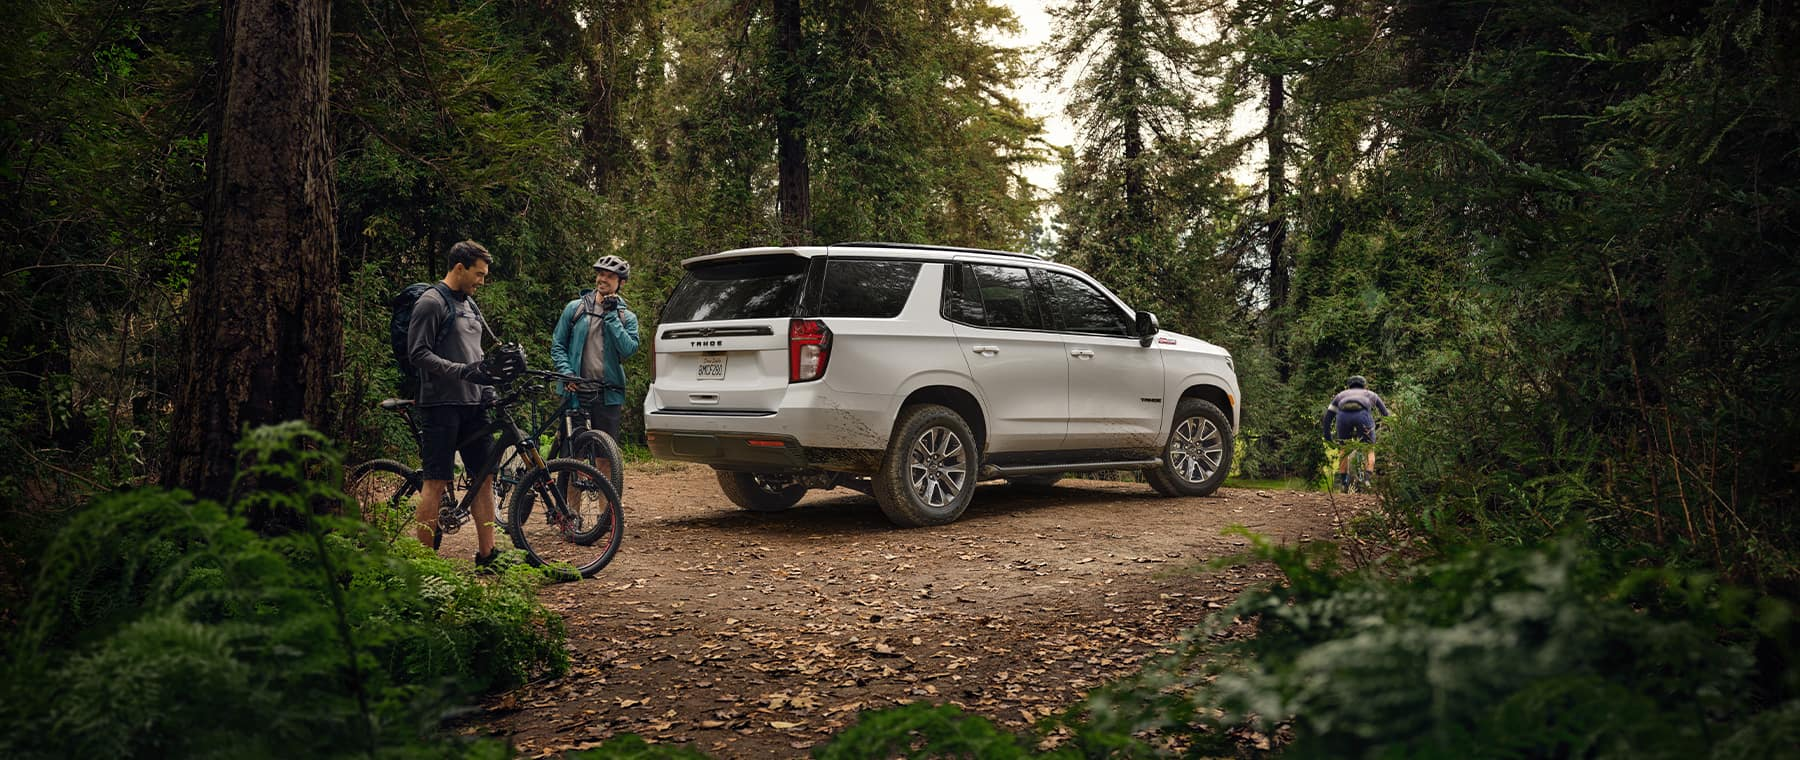 2021 Chevrolet Tahoe in forest with mountain bikers